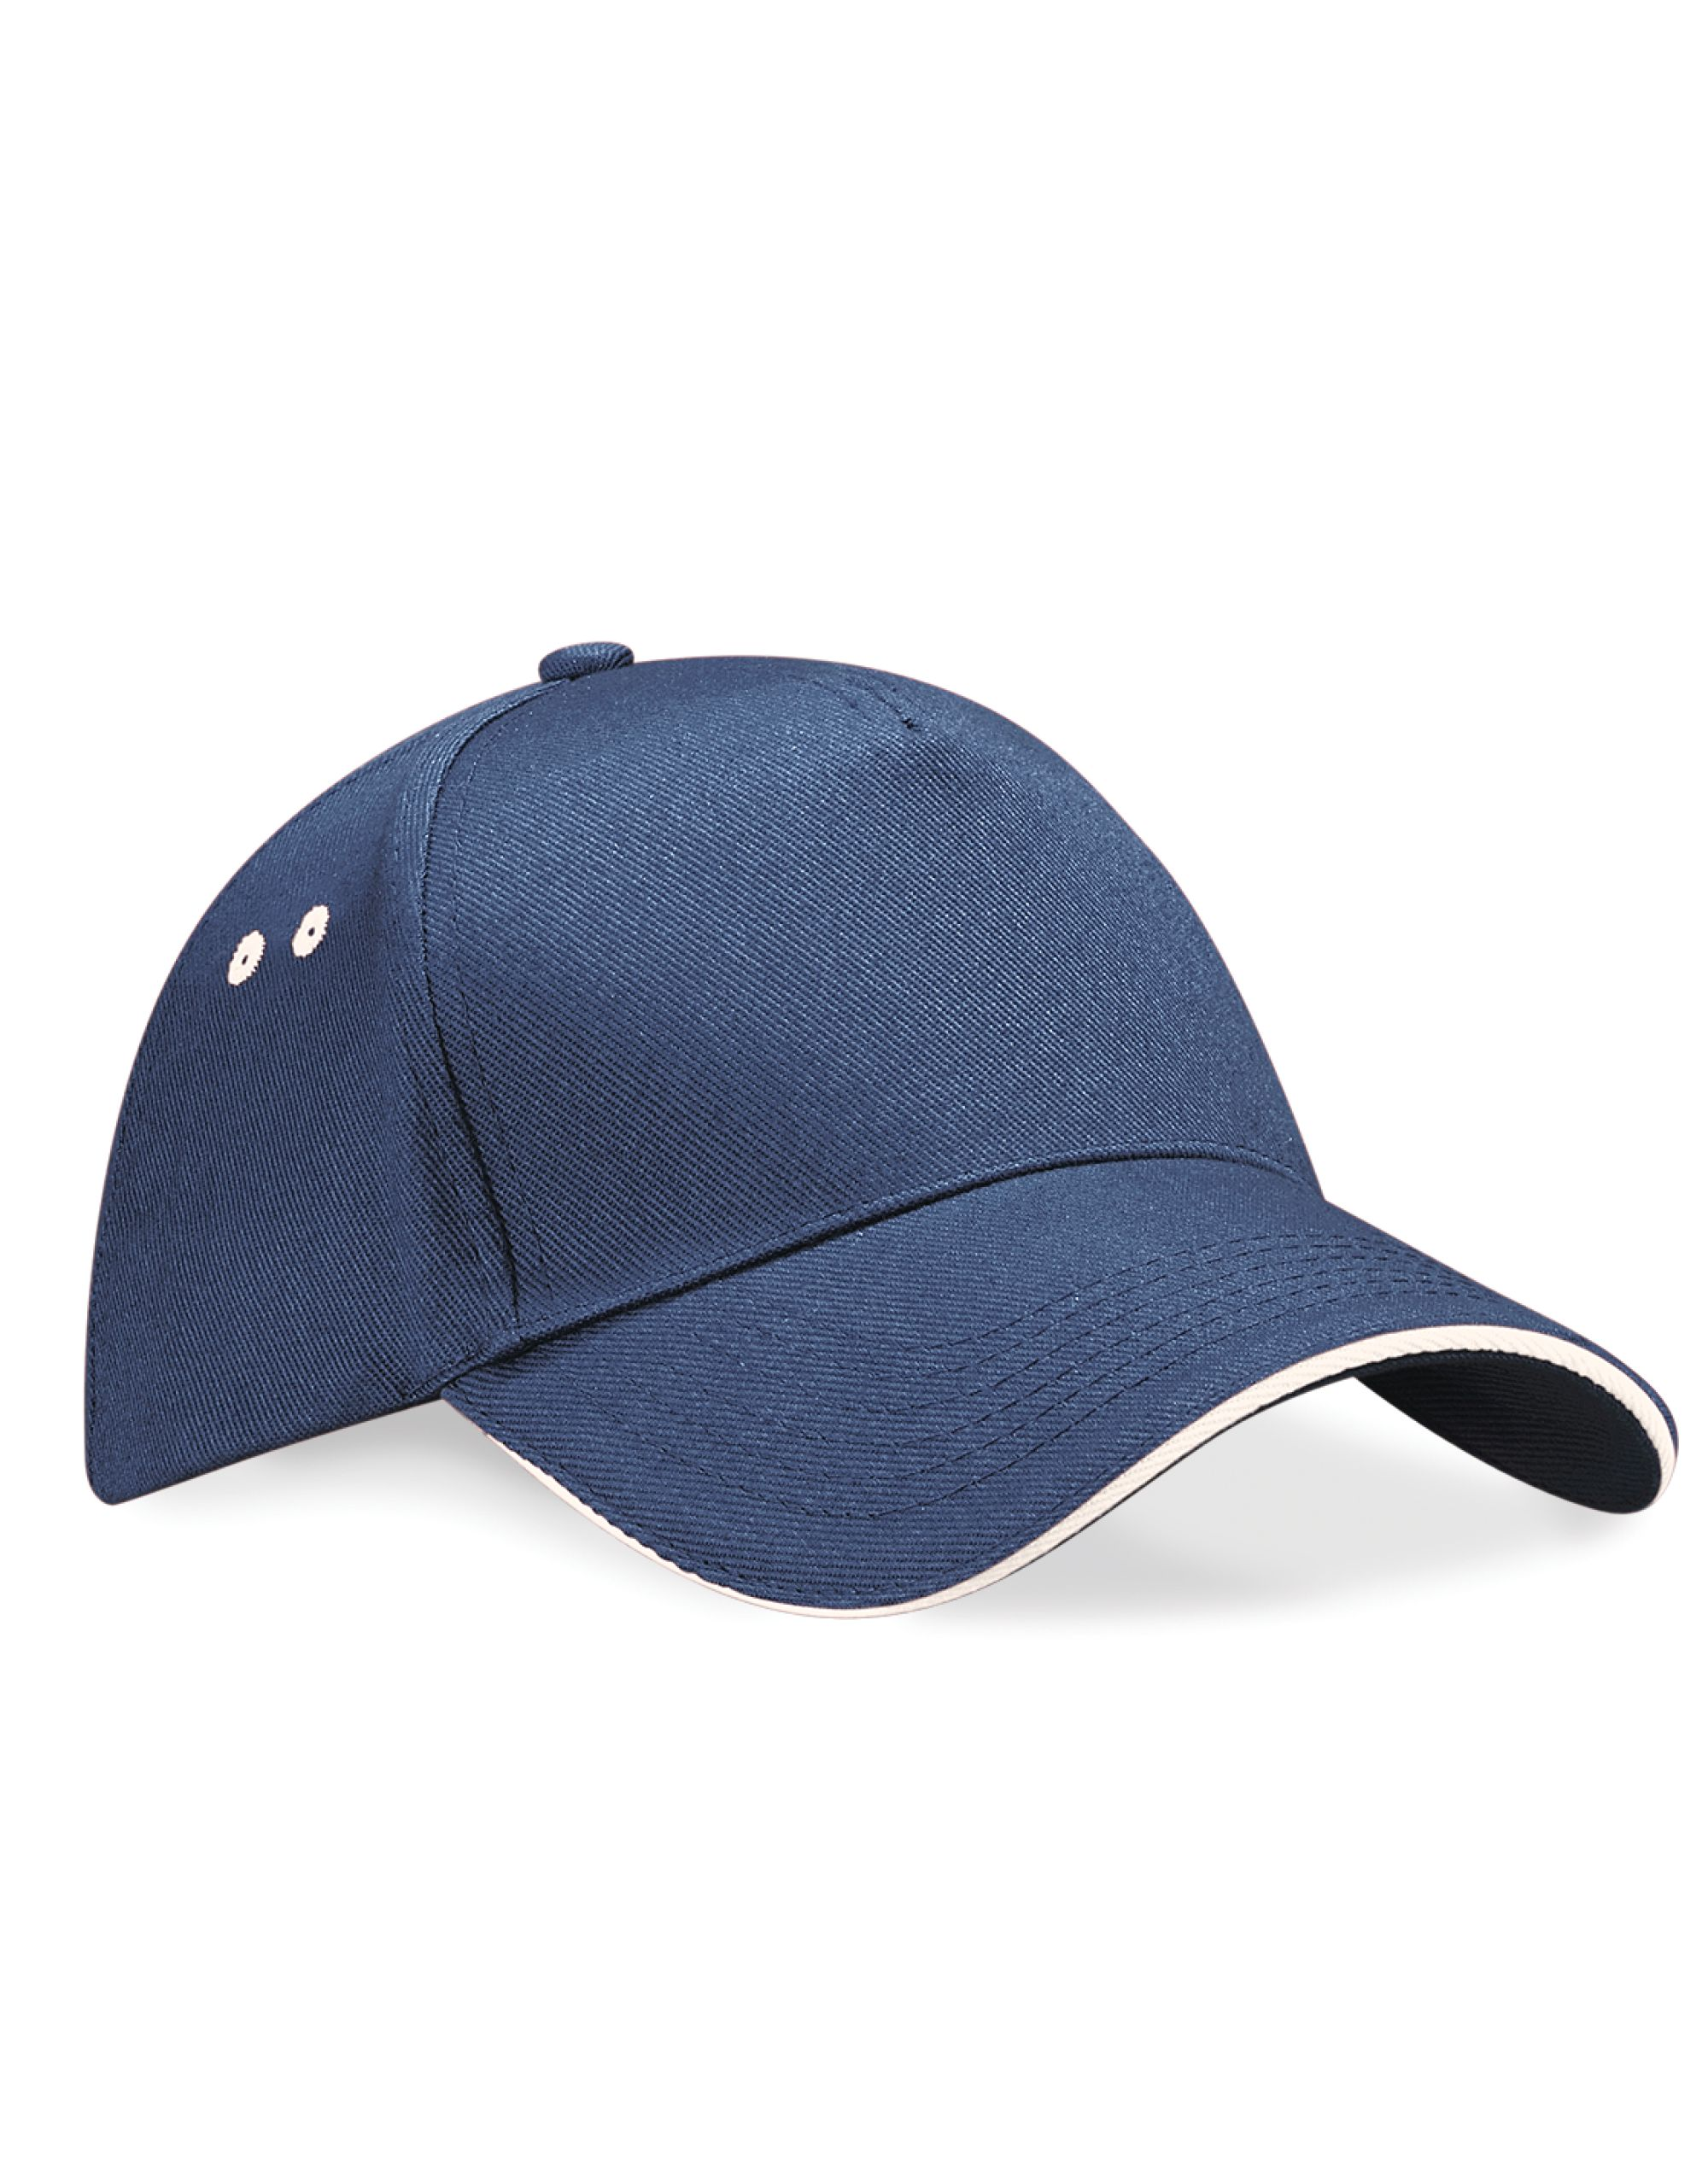 Beechfield  Ultimate 5 Panel Cap Sandwich Peak